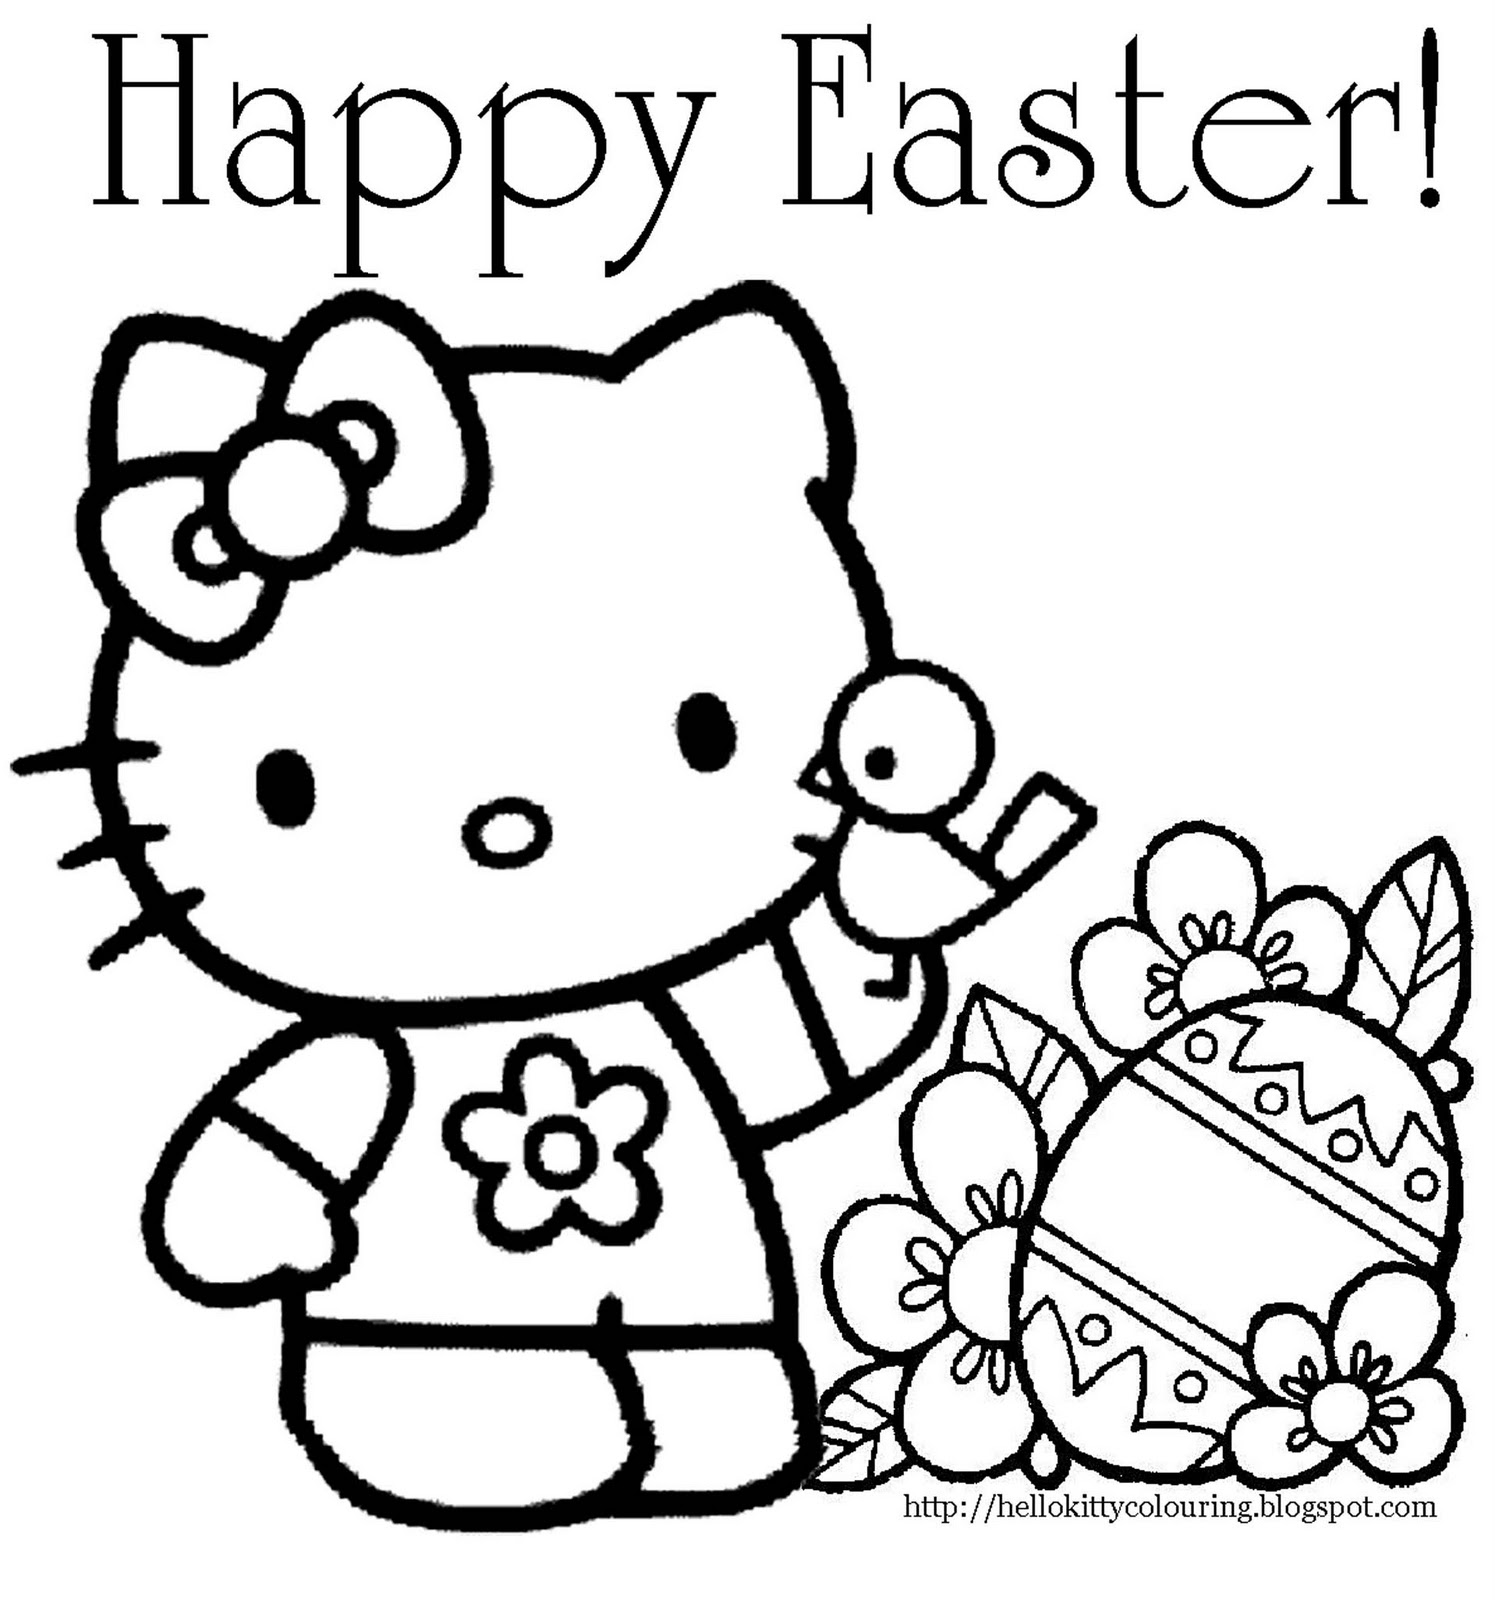 hello kitty coloring pages printable - Hello Kitty on Pinterest Coloring Pages, Hello Kitty